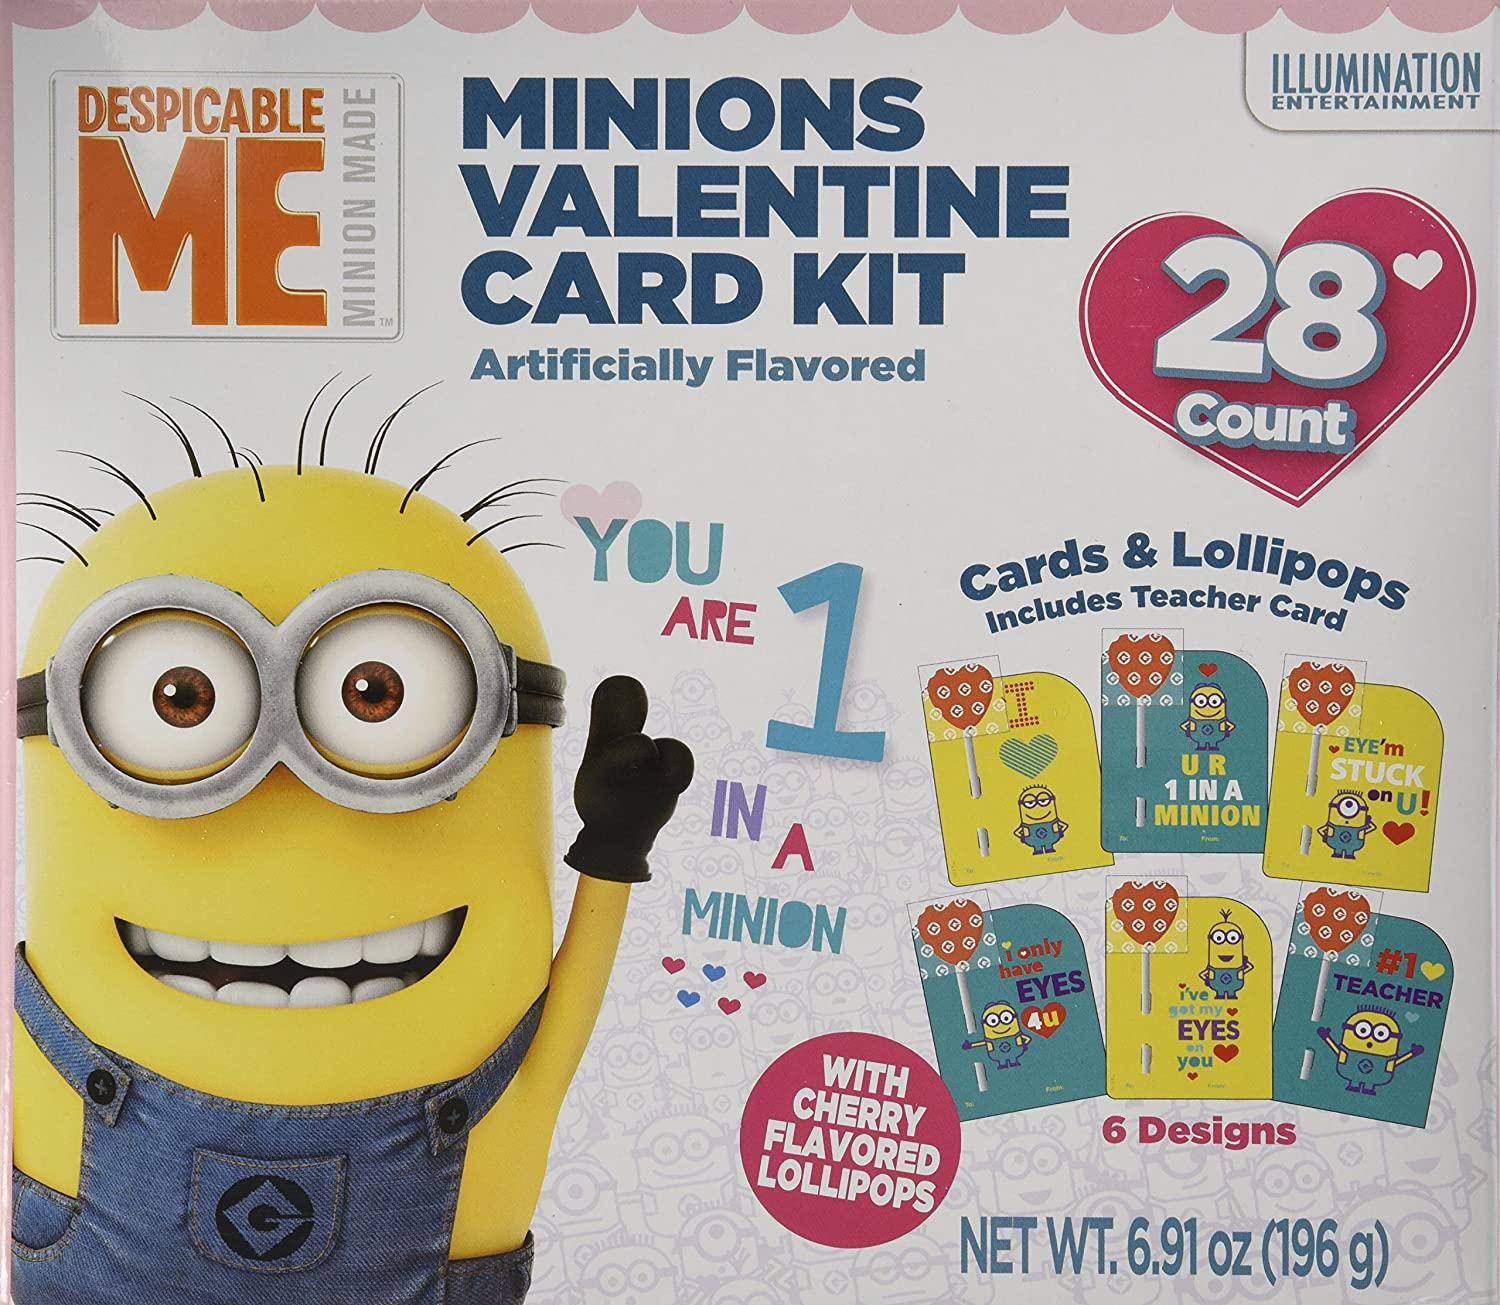 Amazon.com : 28 Despicable Me Minion Made Valentine Card Kit With Cherry  Candy Lollipops : Grocery U0026 Gourmet Food